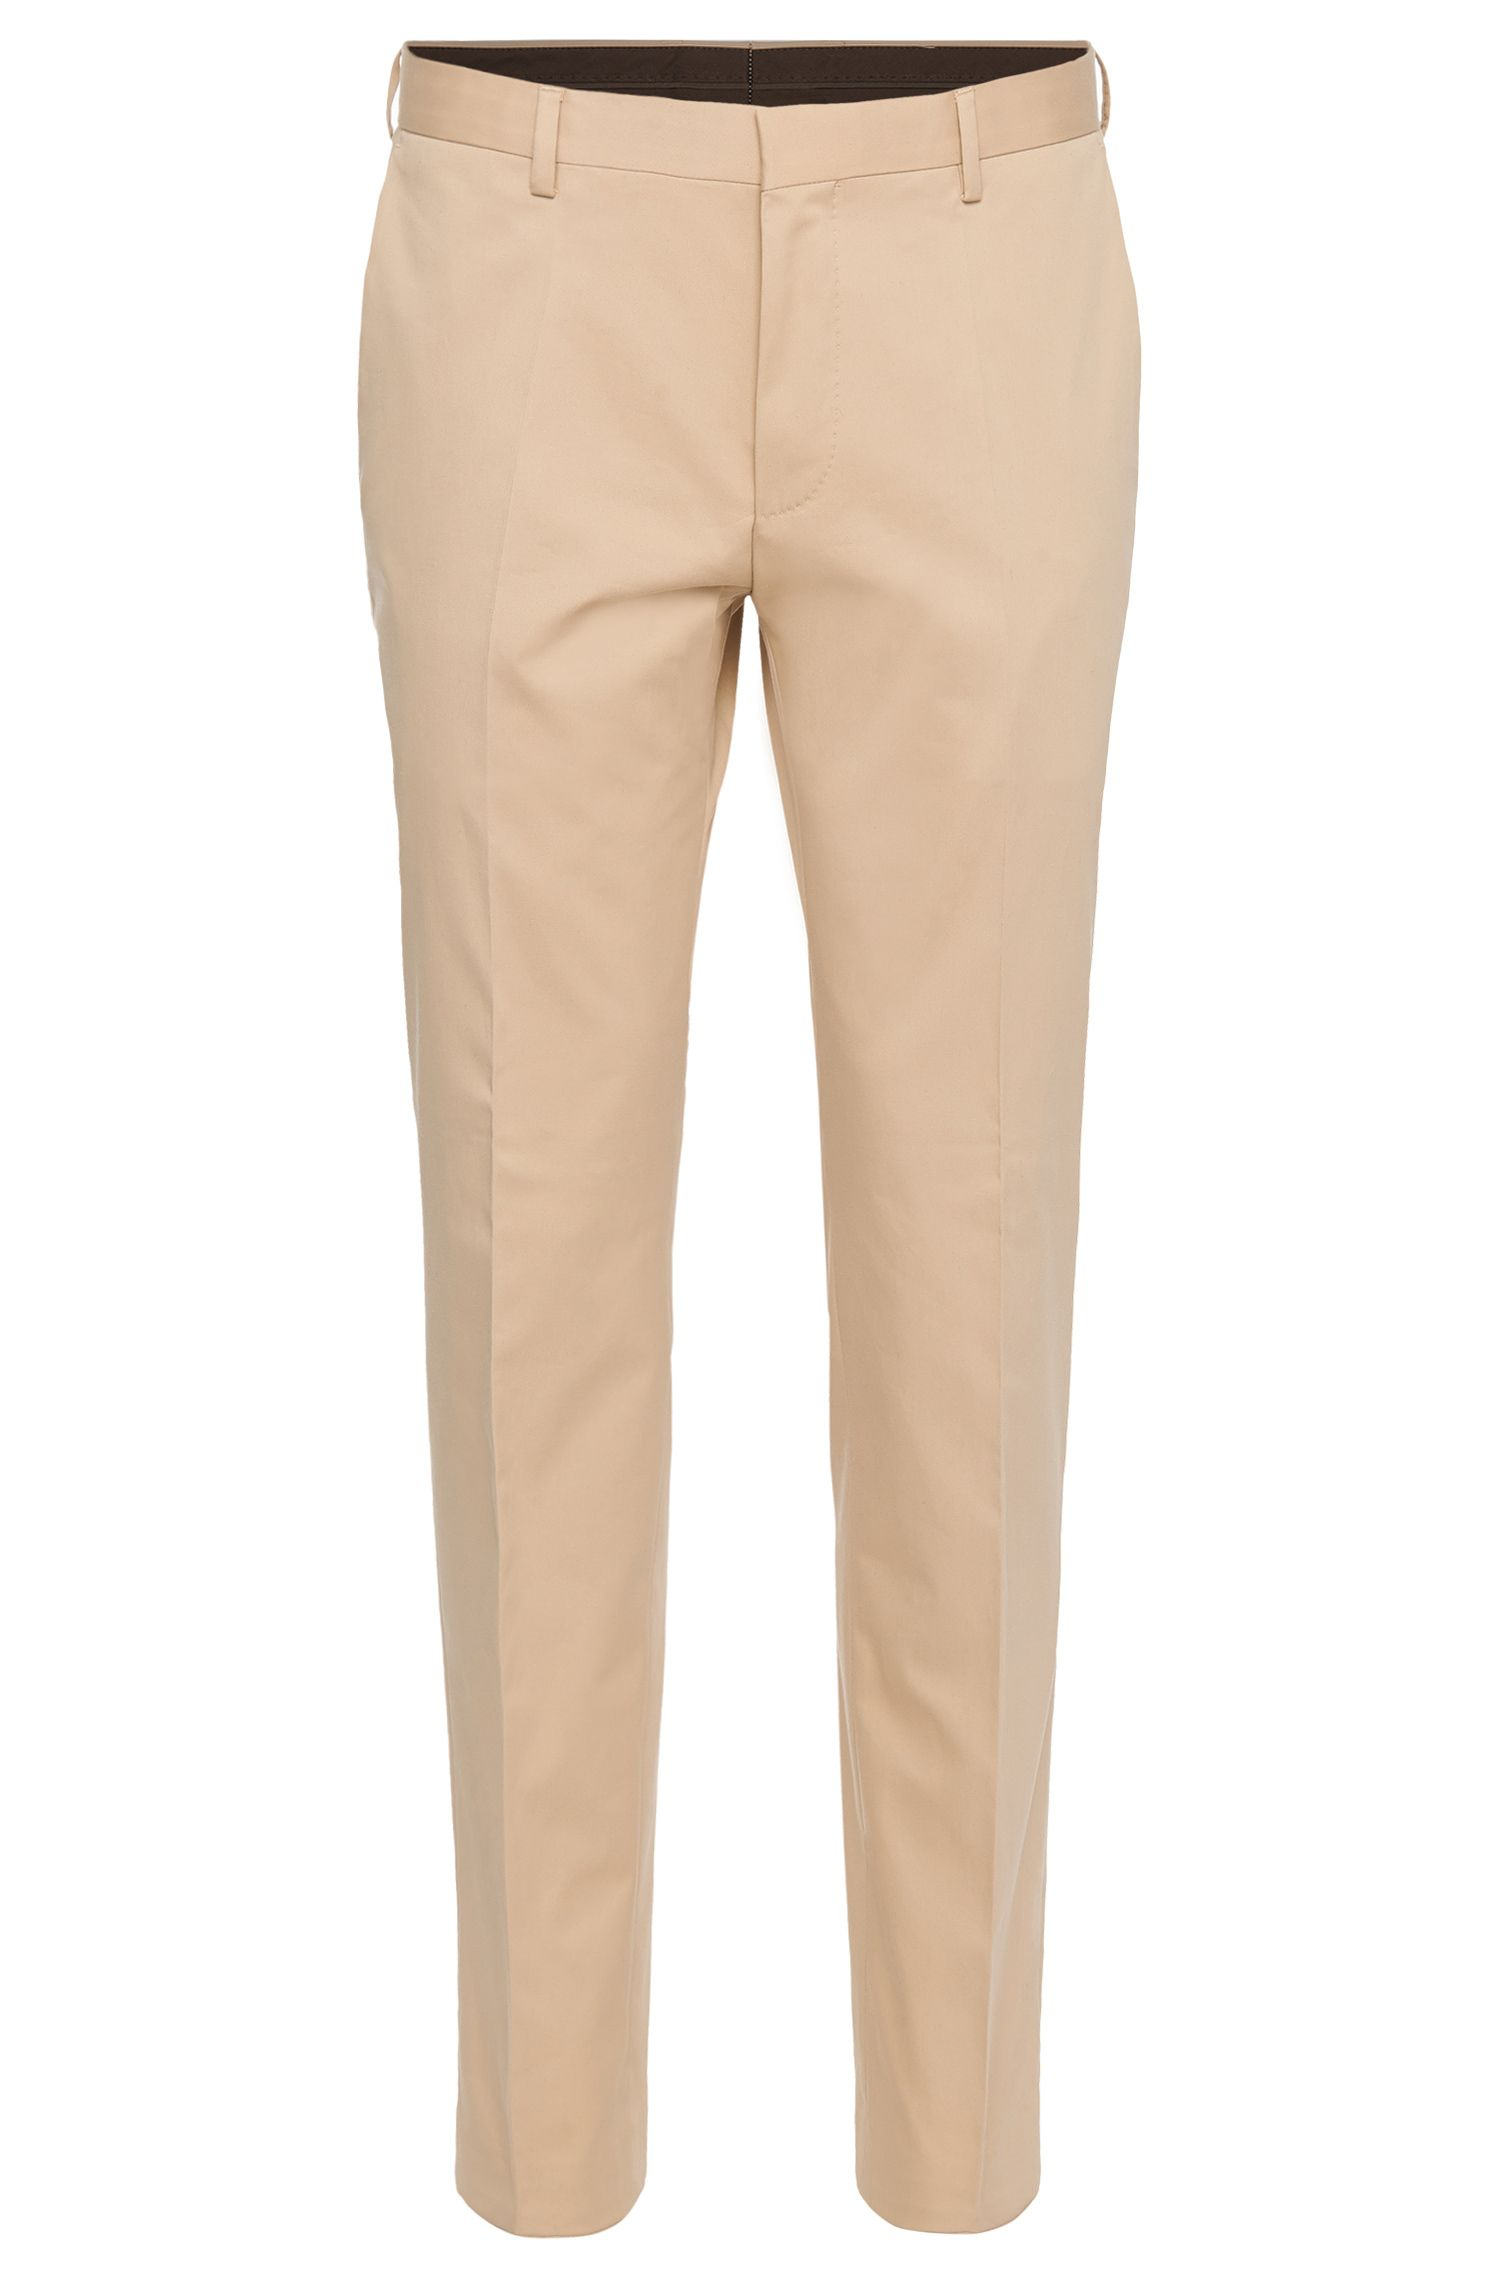 'Gibson_Cyl' | Slim fit, Stretch Cotton Dress Pants